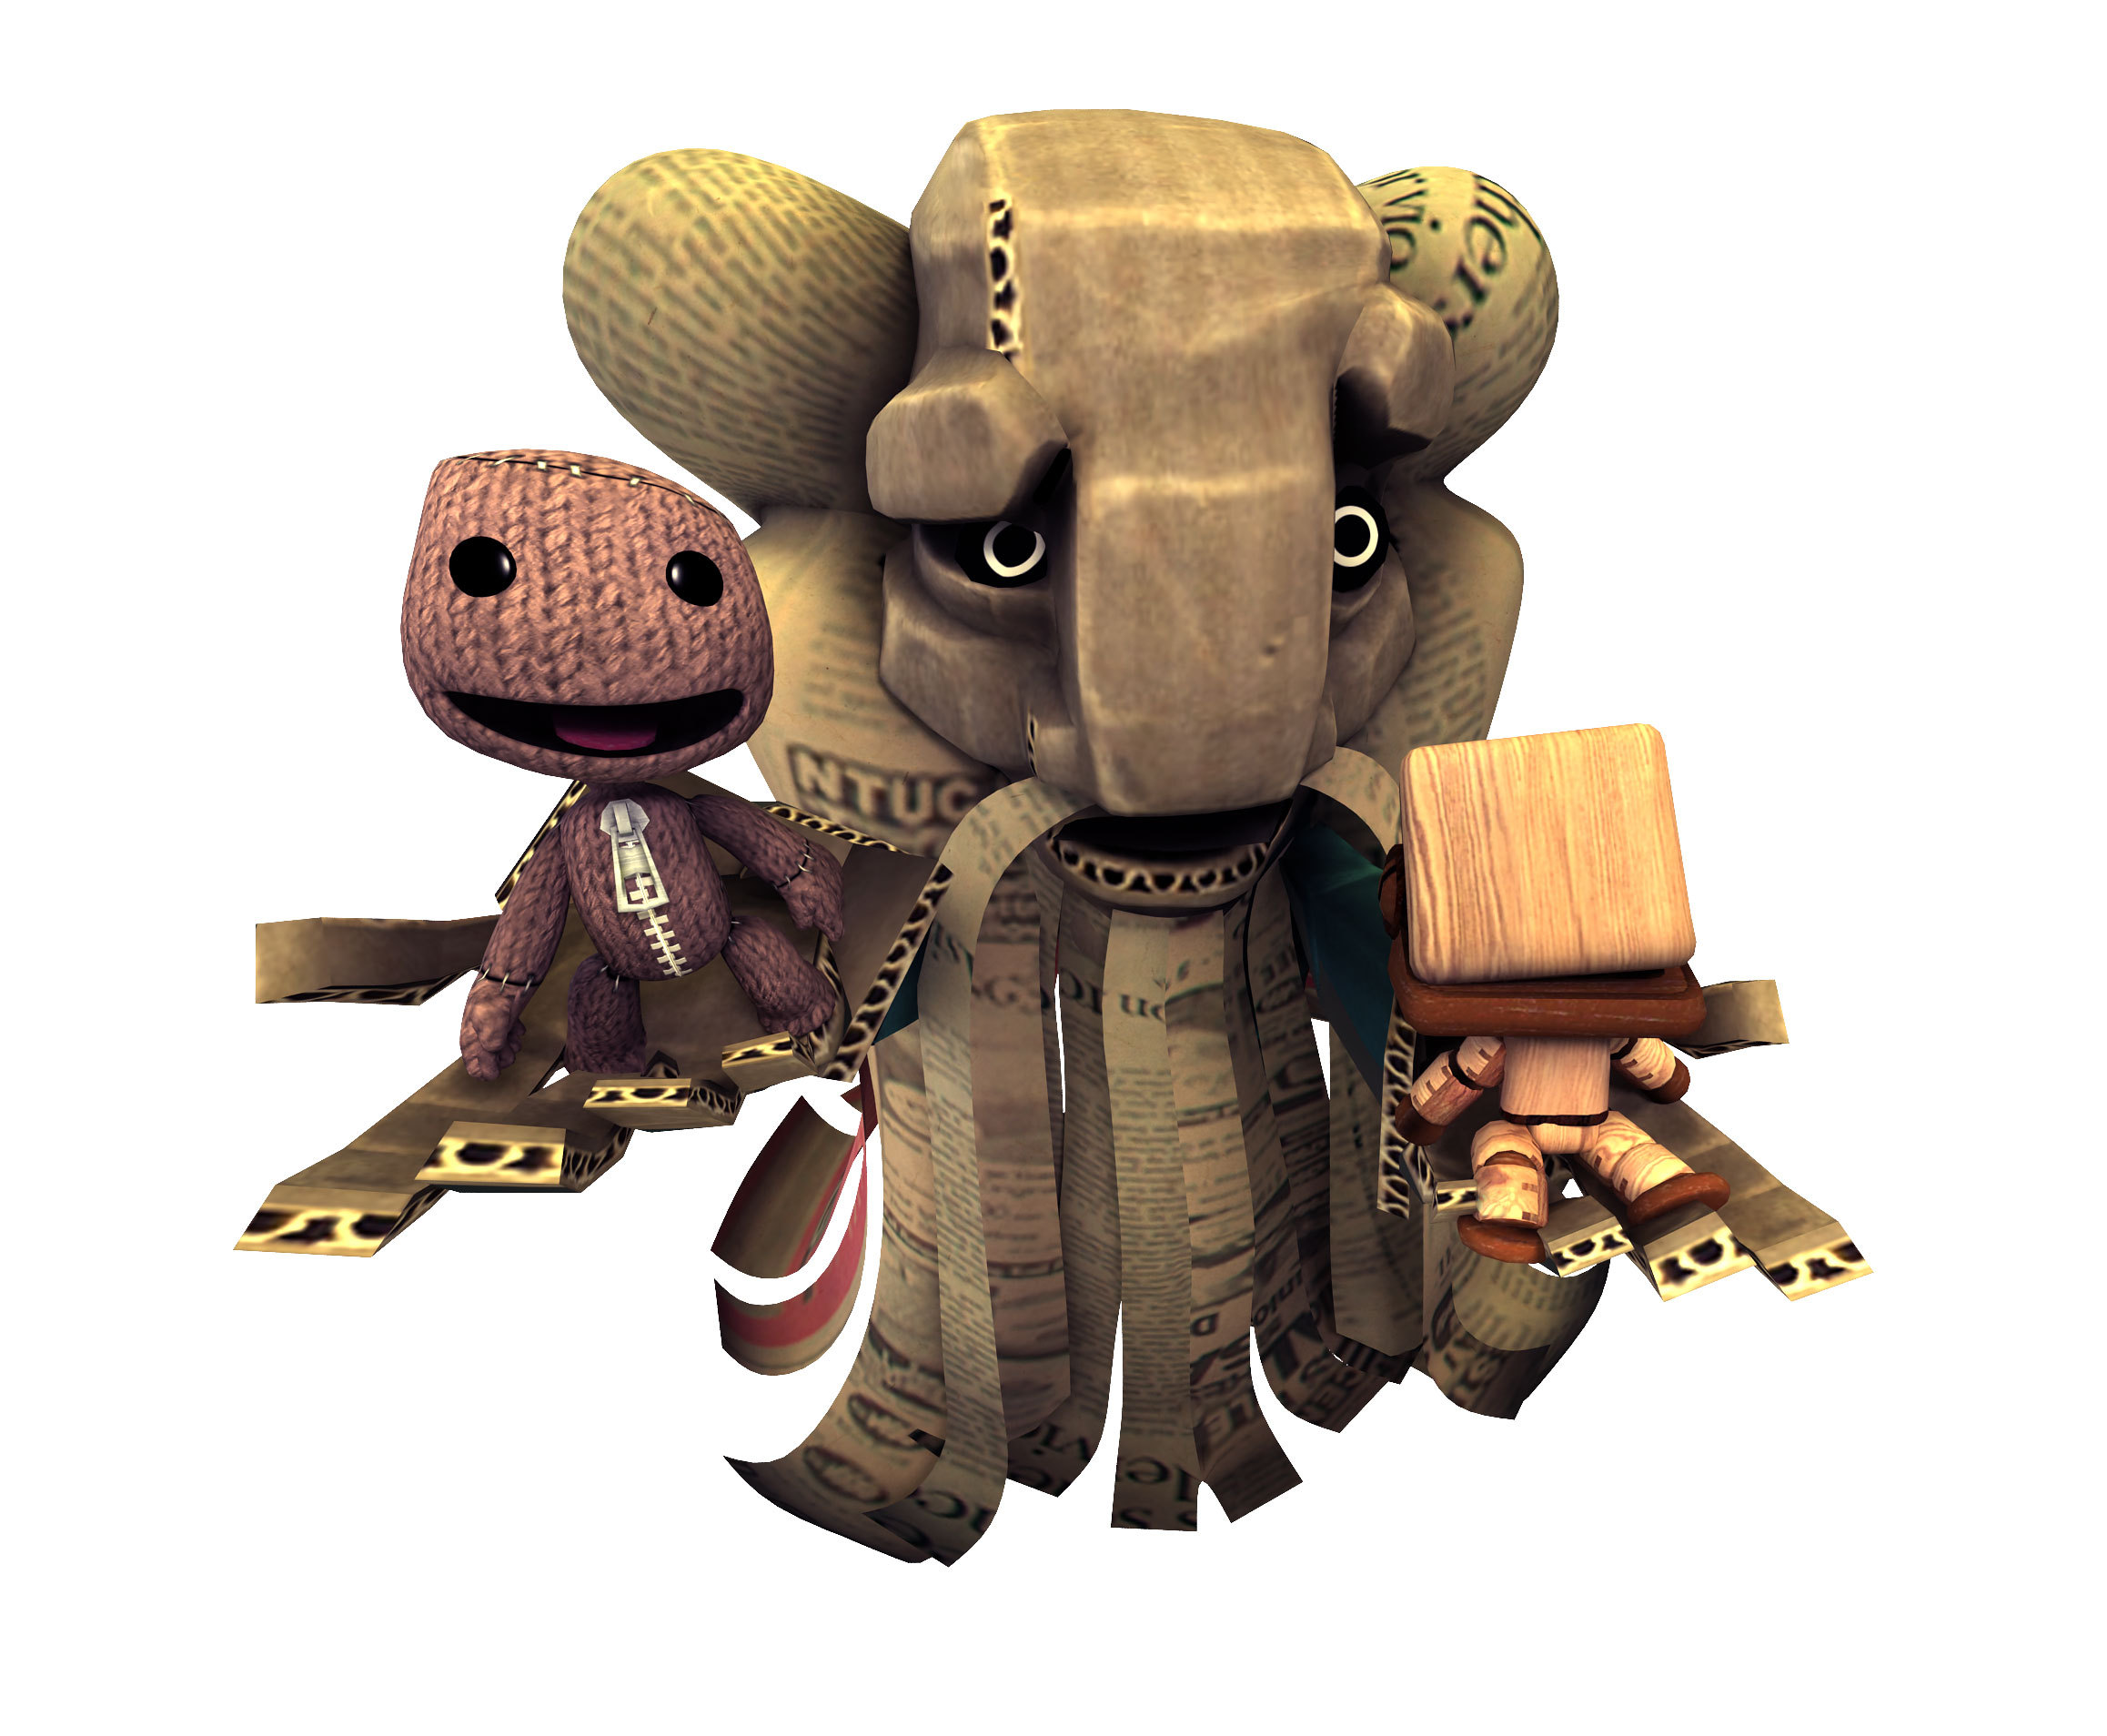 Littlebigplanet 2 - Movie, Screens, Art, A Picture Of Some -2483